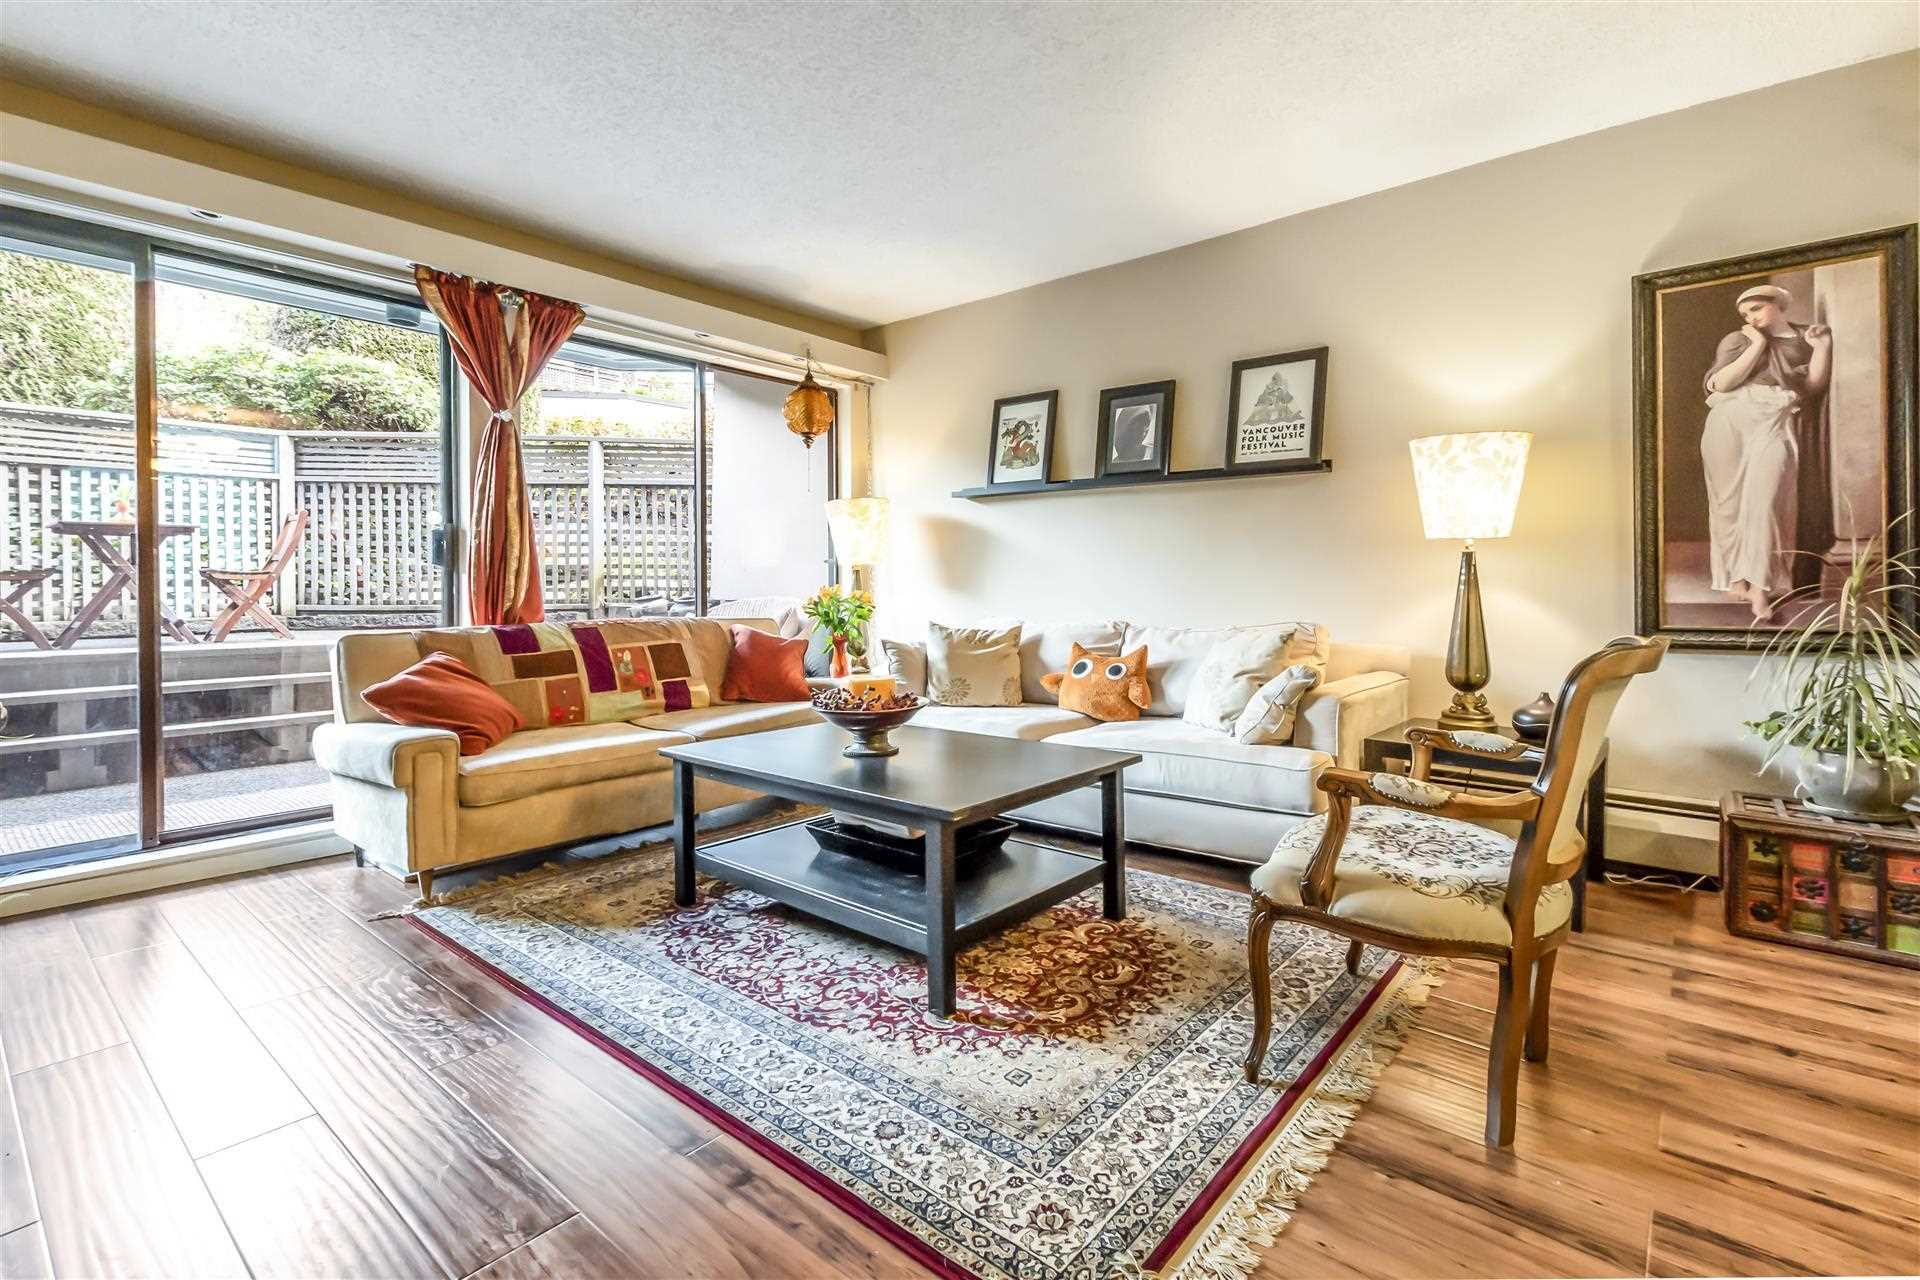 108 1955 WOODWAY PLACE - Brentwood Park Apartment/Condo for sale, 1 Bedroom (R2605878)